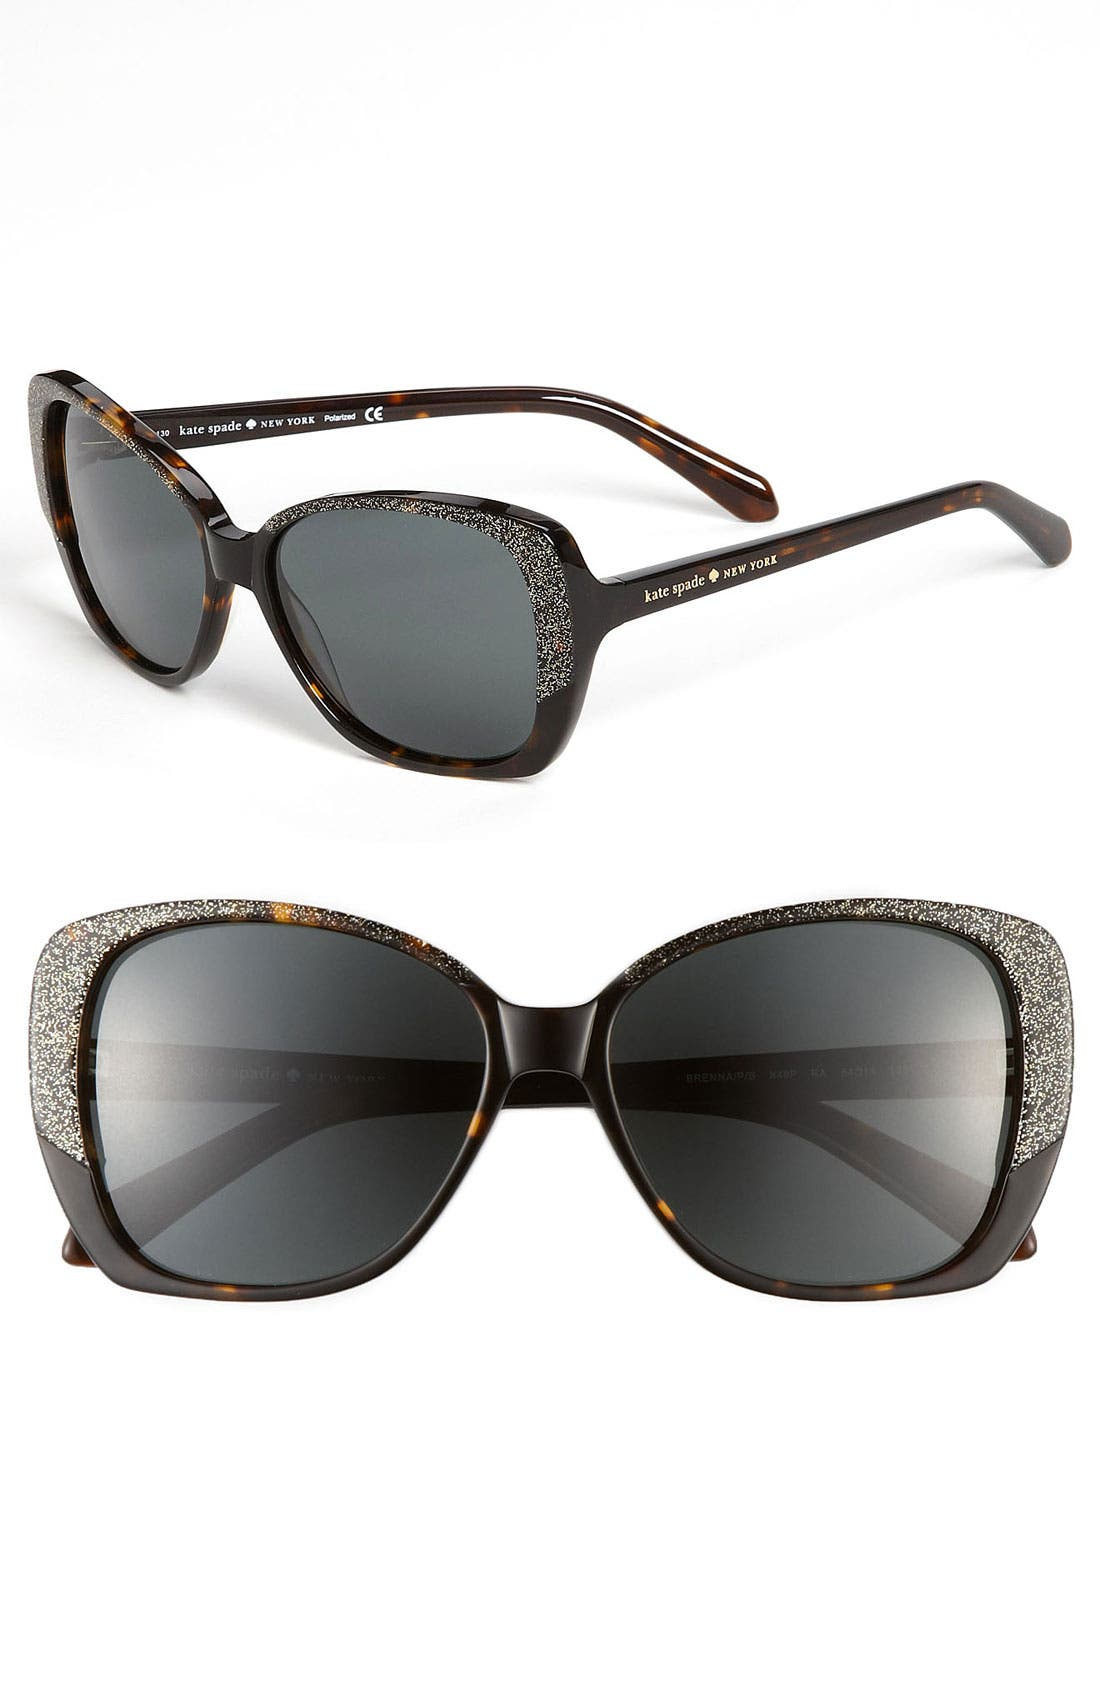 Alternate Image 1 Selected - kate spade new york 'brenna' 54mm polarized sunglasses